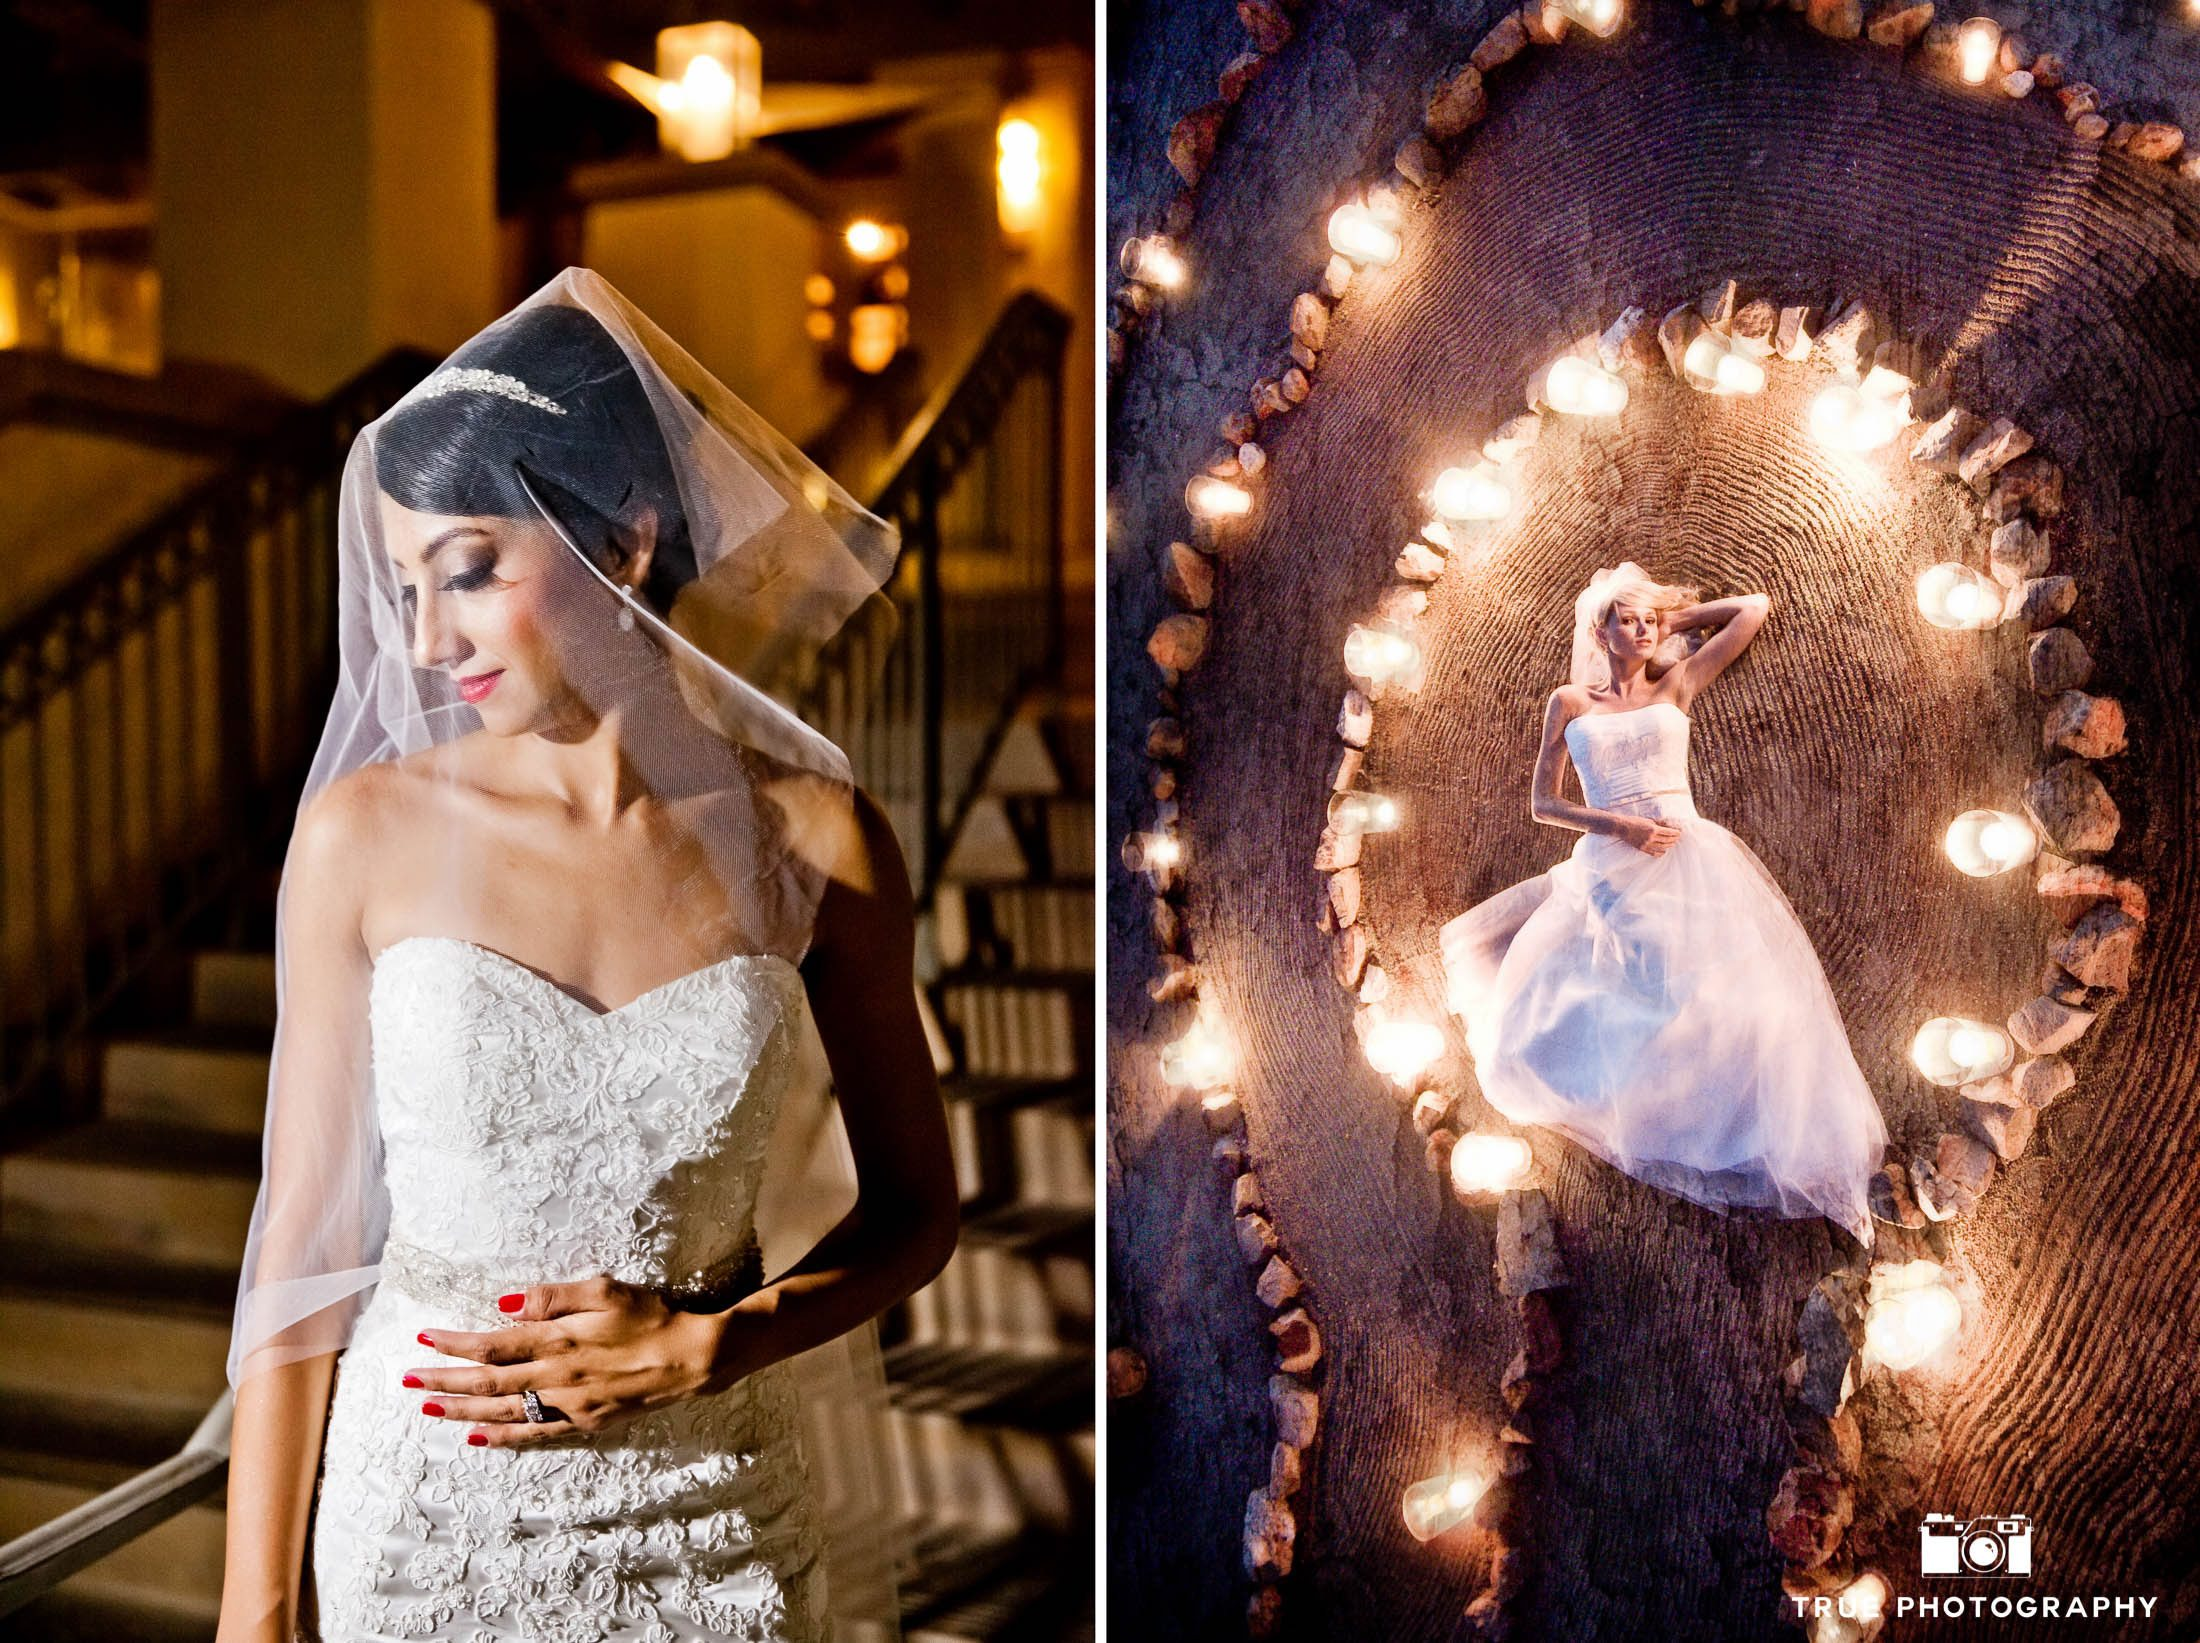 Bride with veil and bride laying down during night photograph